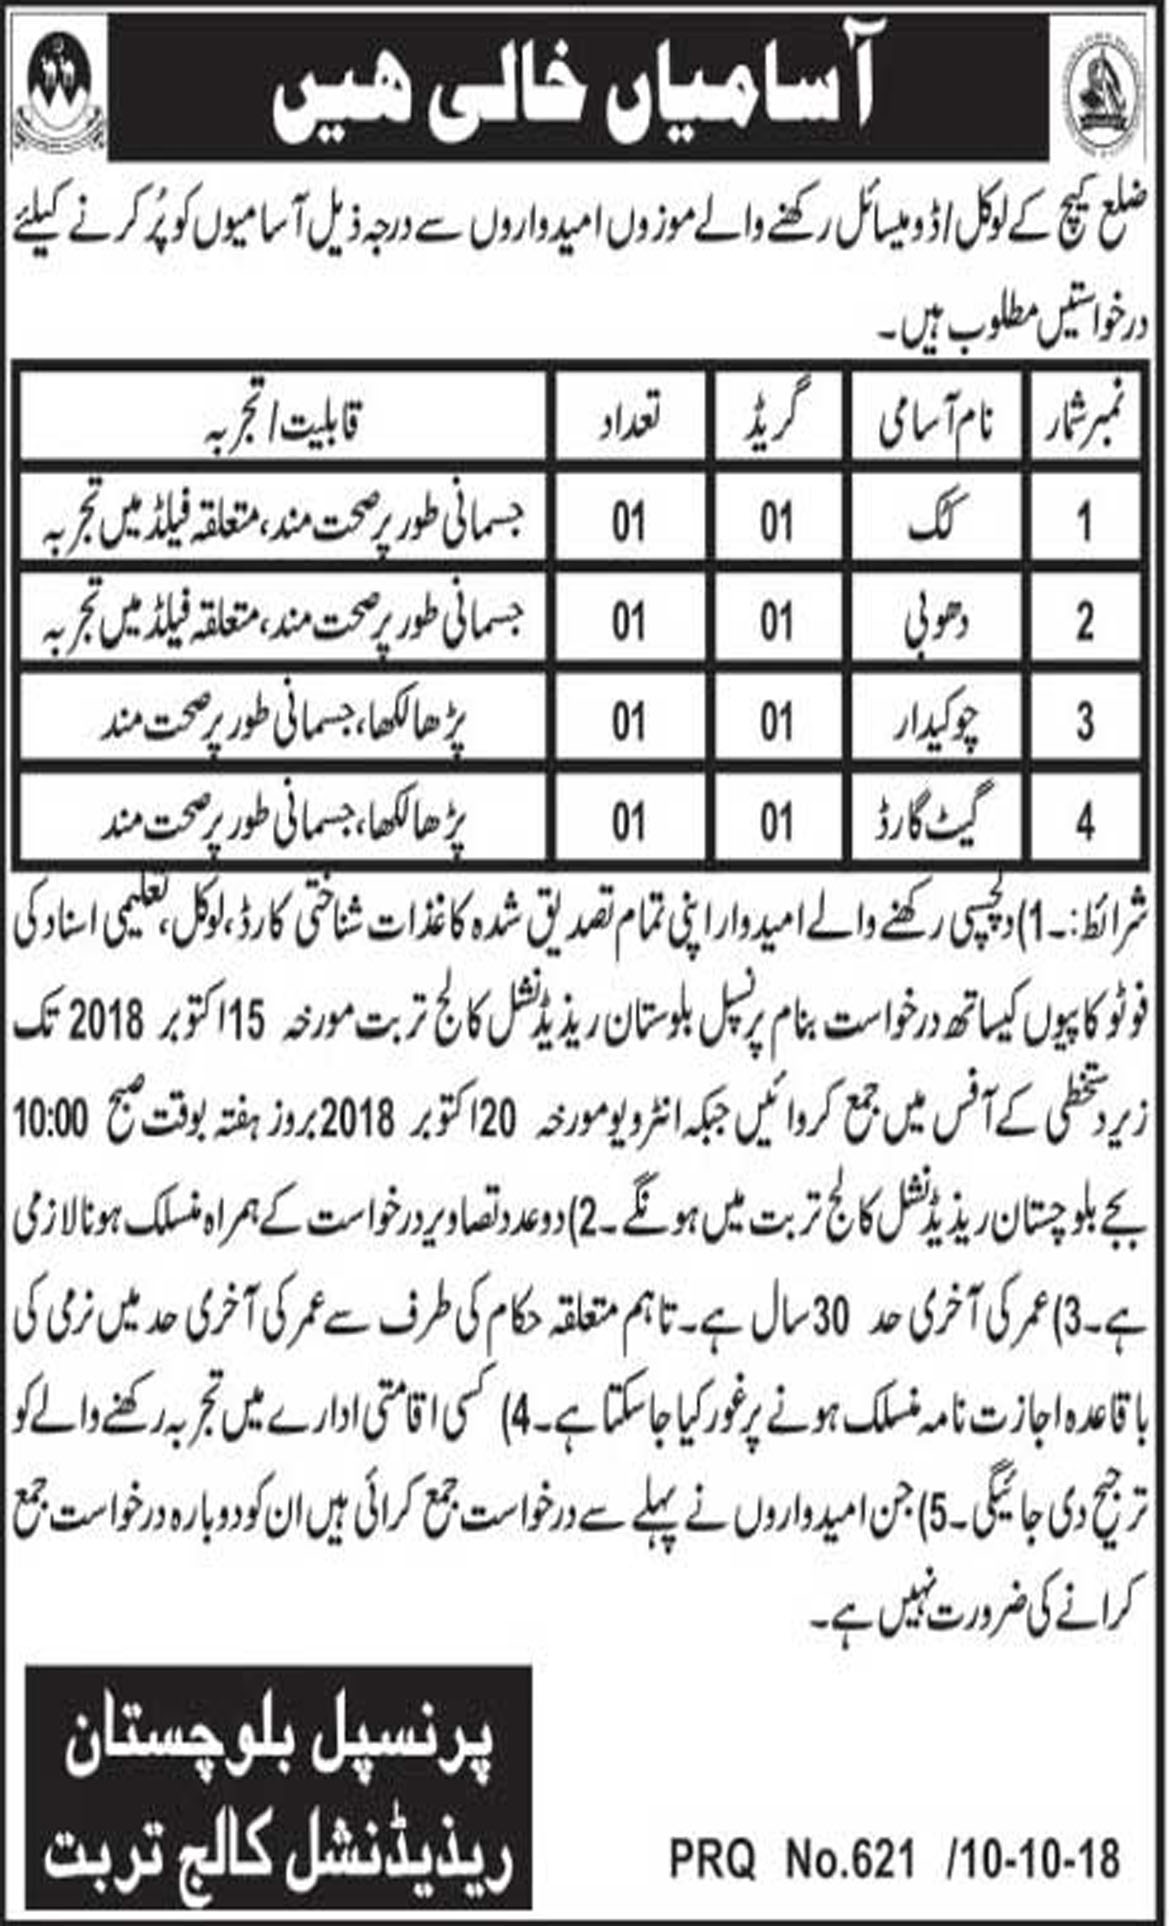 Jobs In Balochistan Residential College 12 Oct 2018